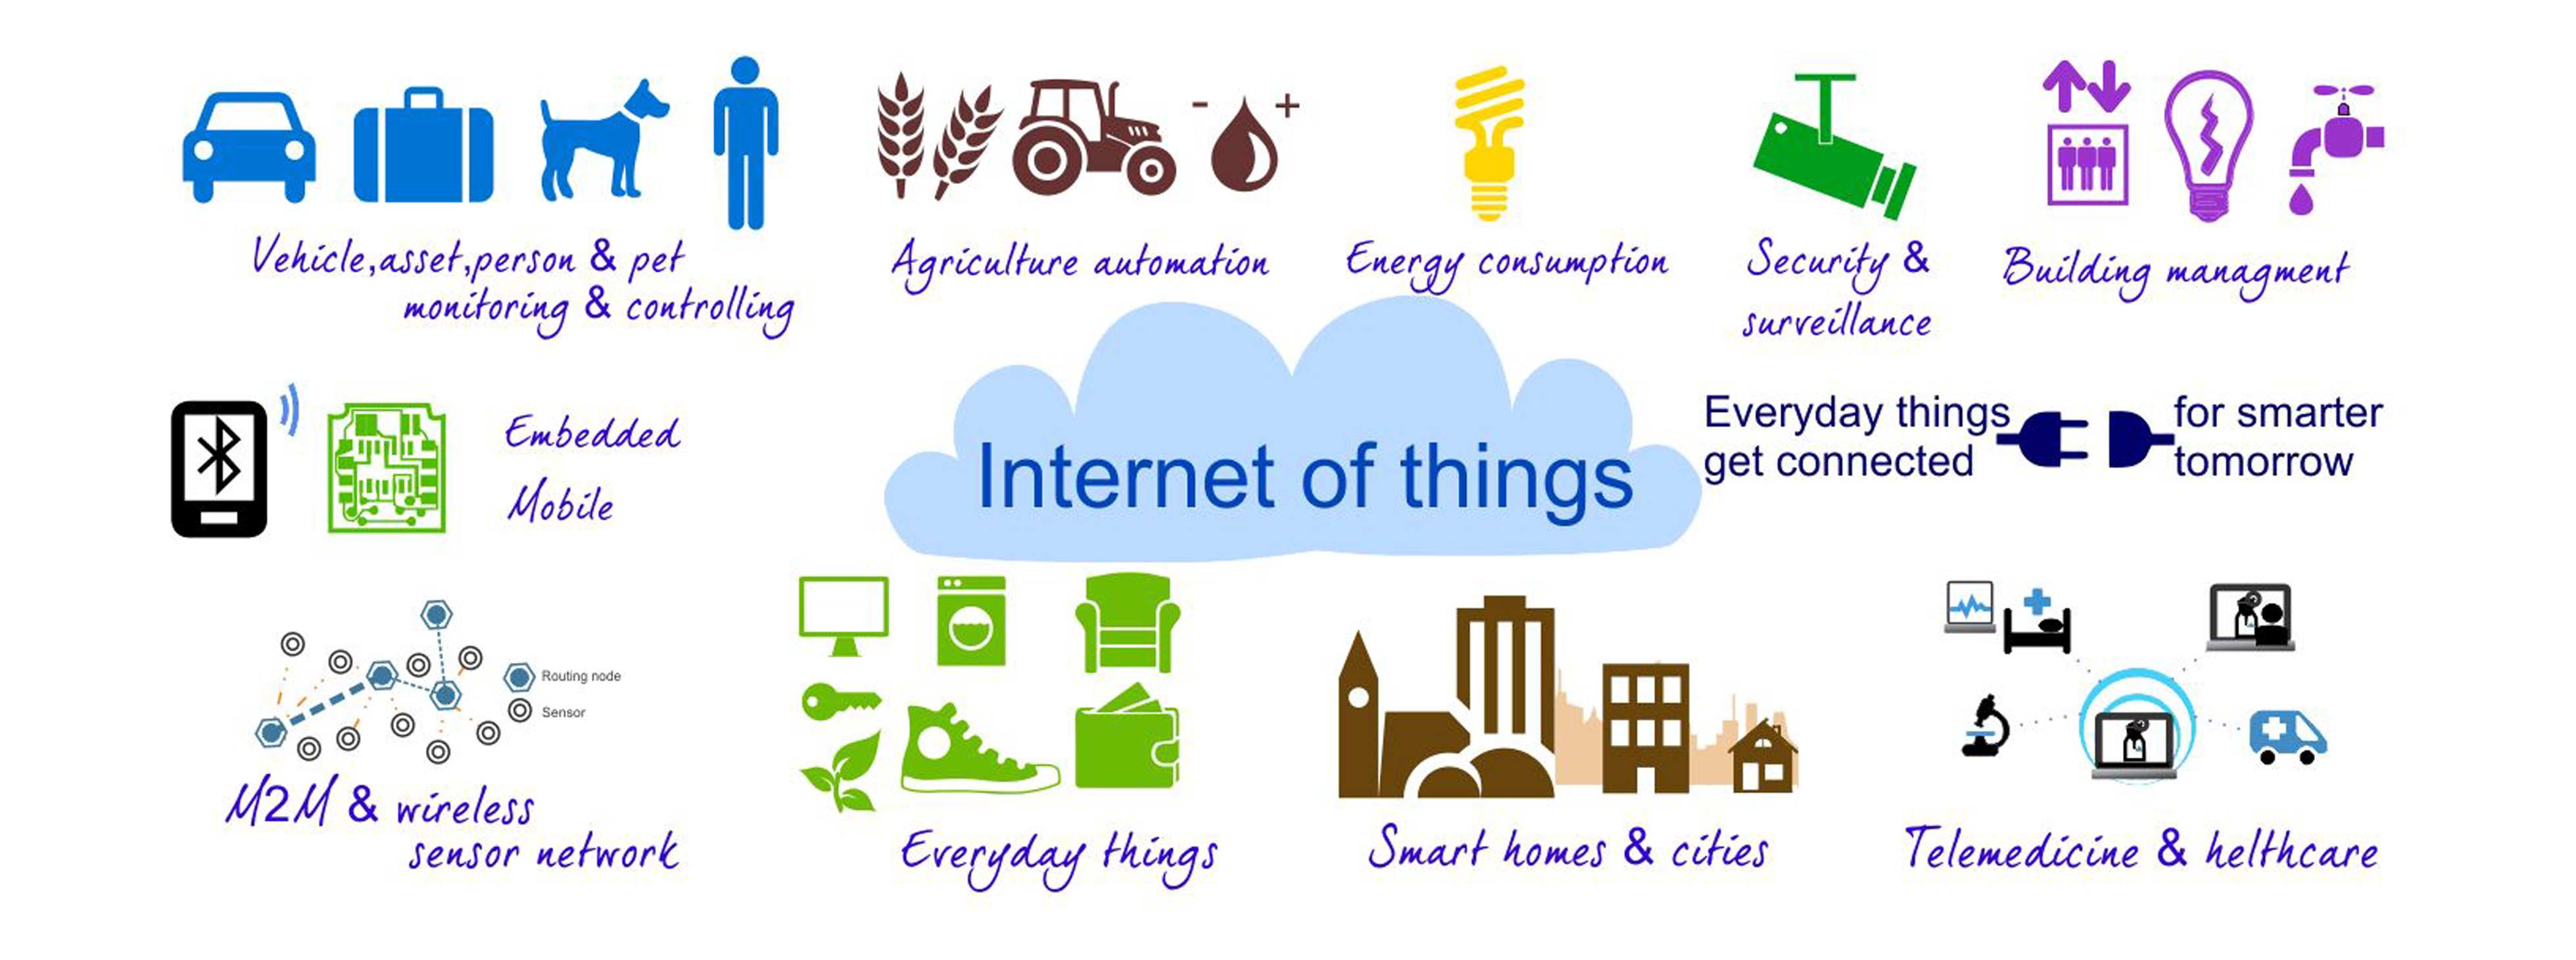 Technical report on internet of things